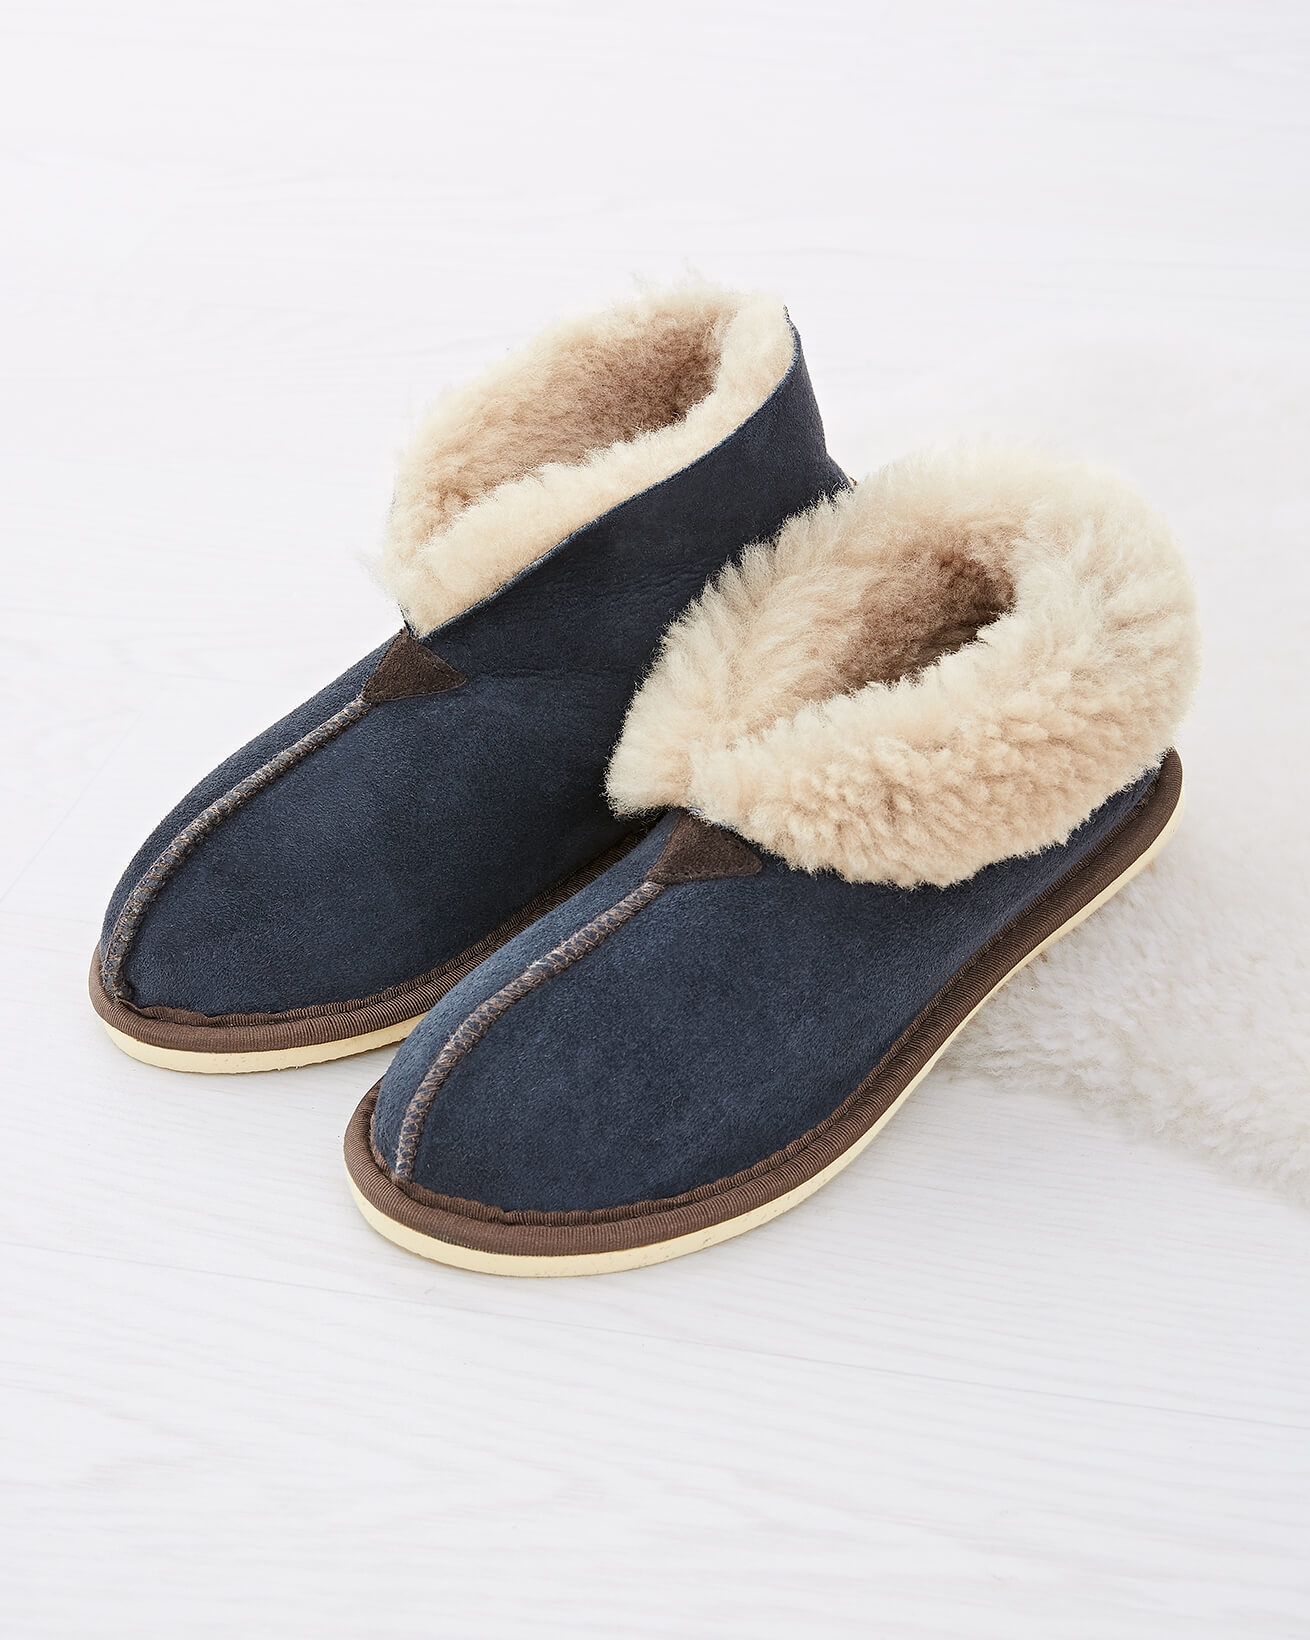 Ladies Shearling Bootee Slippers